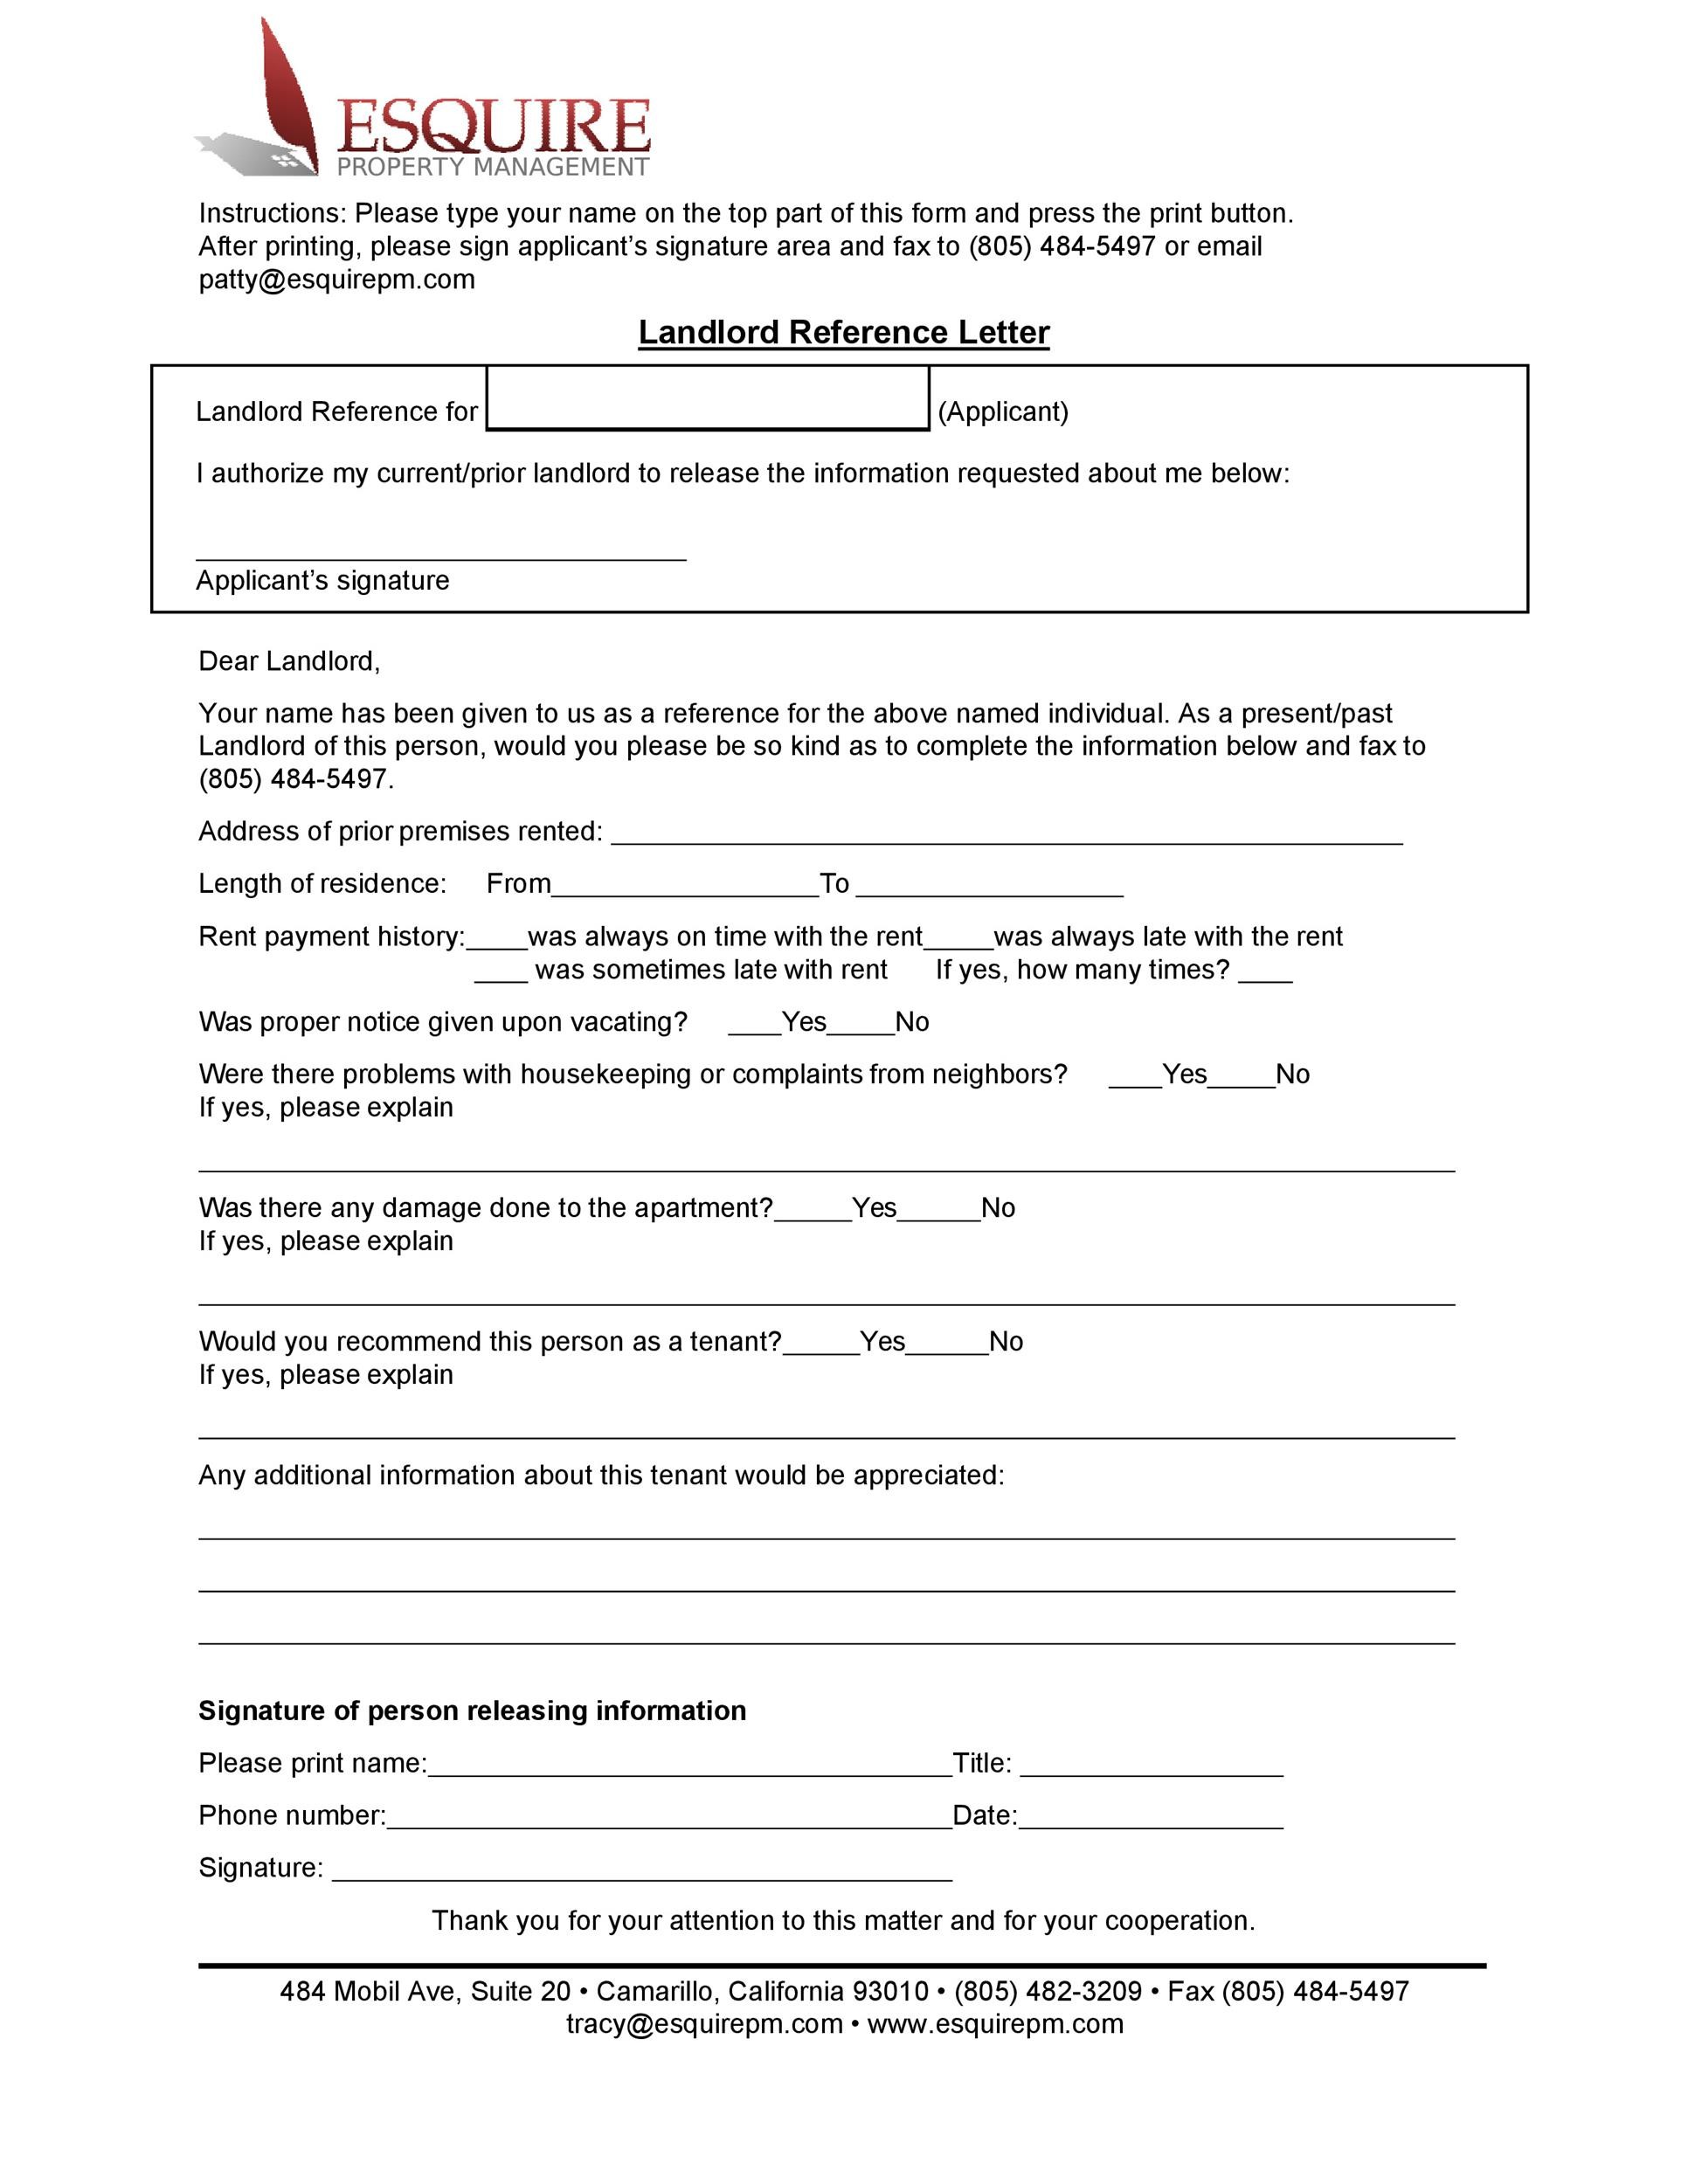 Free landlord reference letter 27